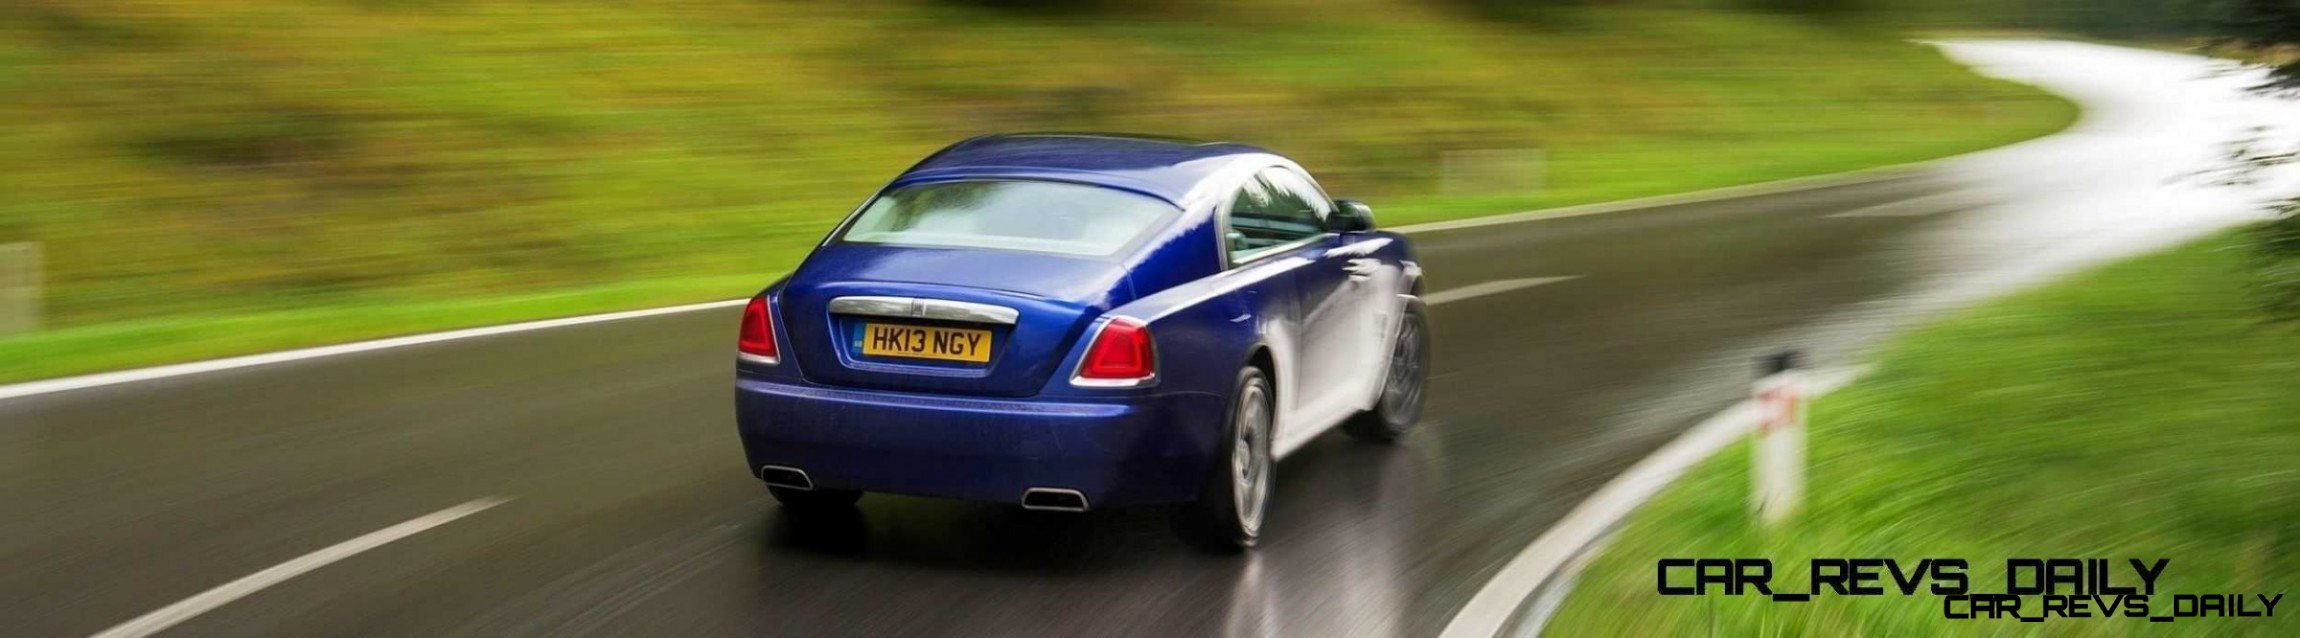 Rolls-Royce Wraith - Color Showcase - Salamanca Blue26